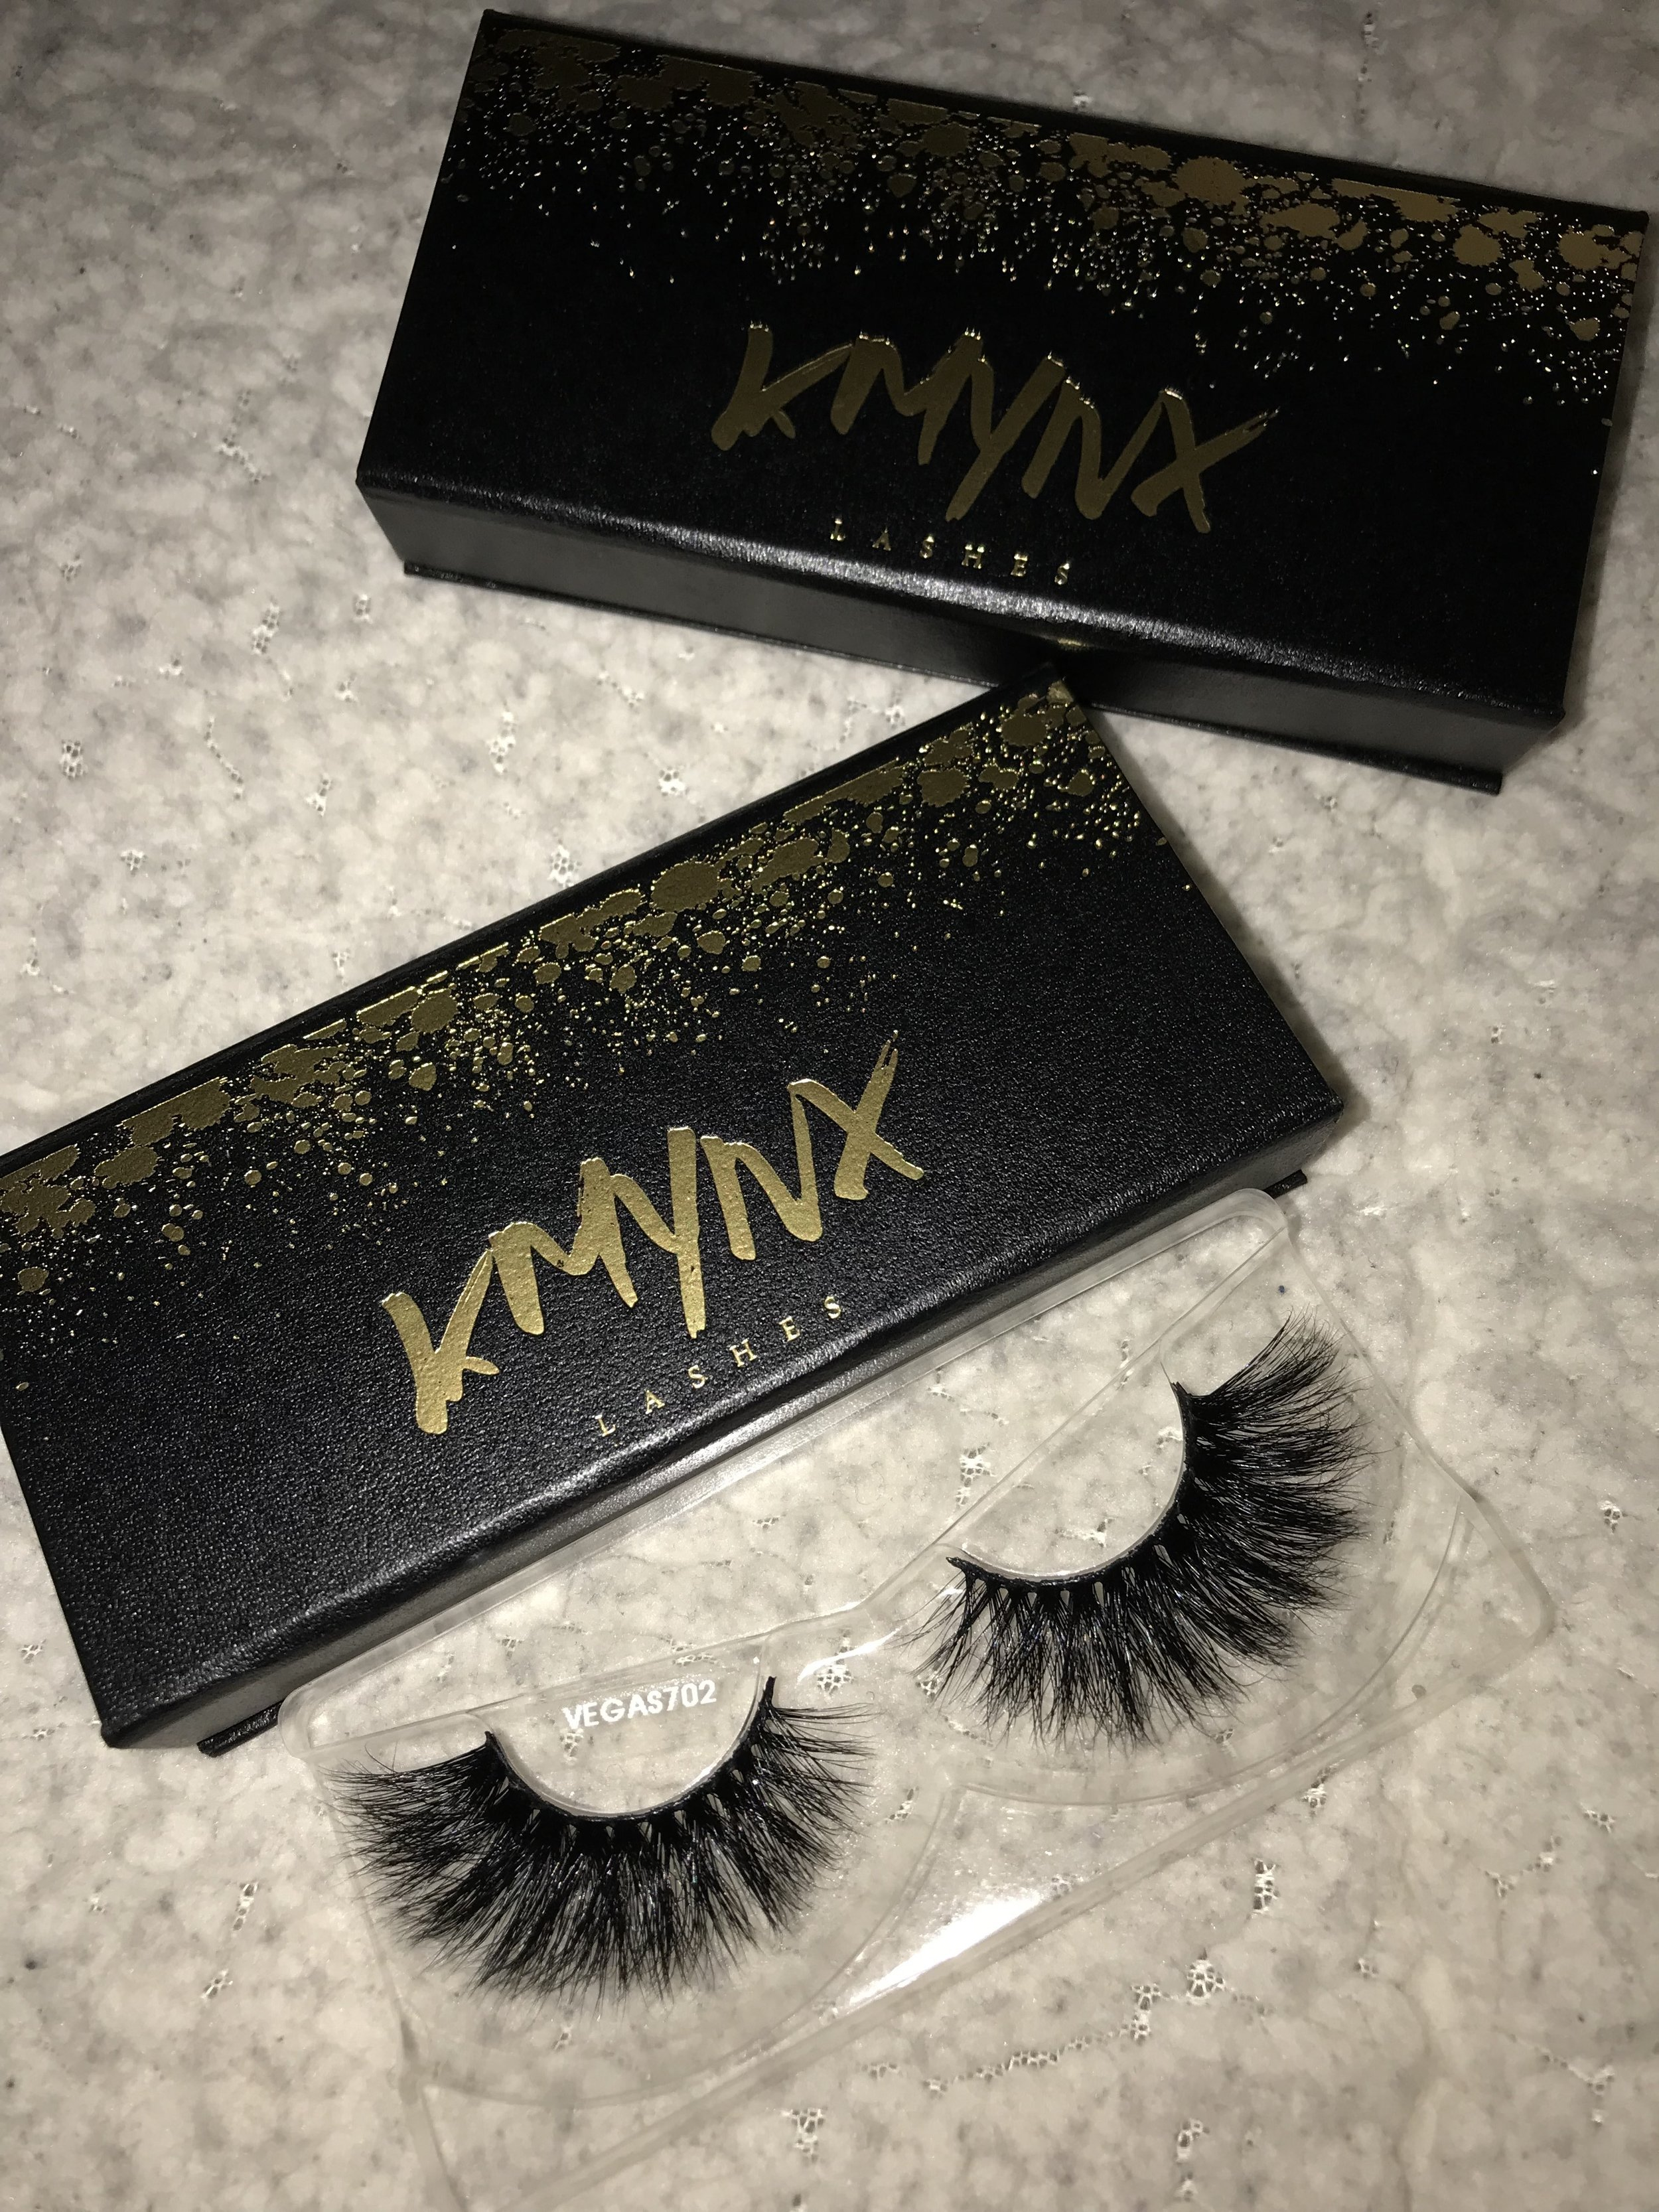 Talk about Bold Lashes. WOW. Get into these fluffy beauties. -